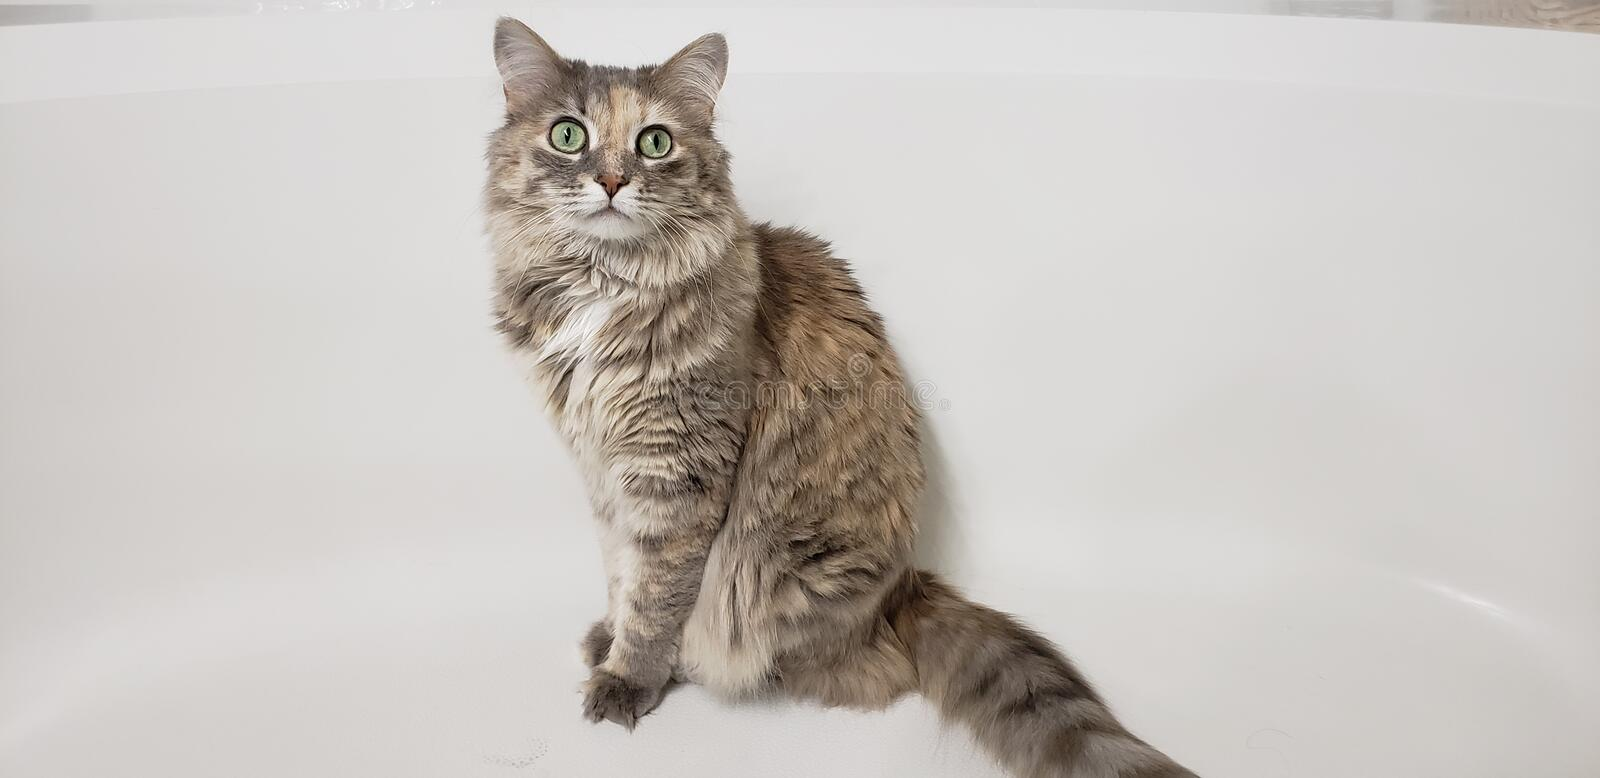 Domestic Long Haired Tabby Cat. Sitting against a white background furry fur long tail royalty free stock photo